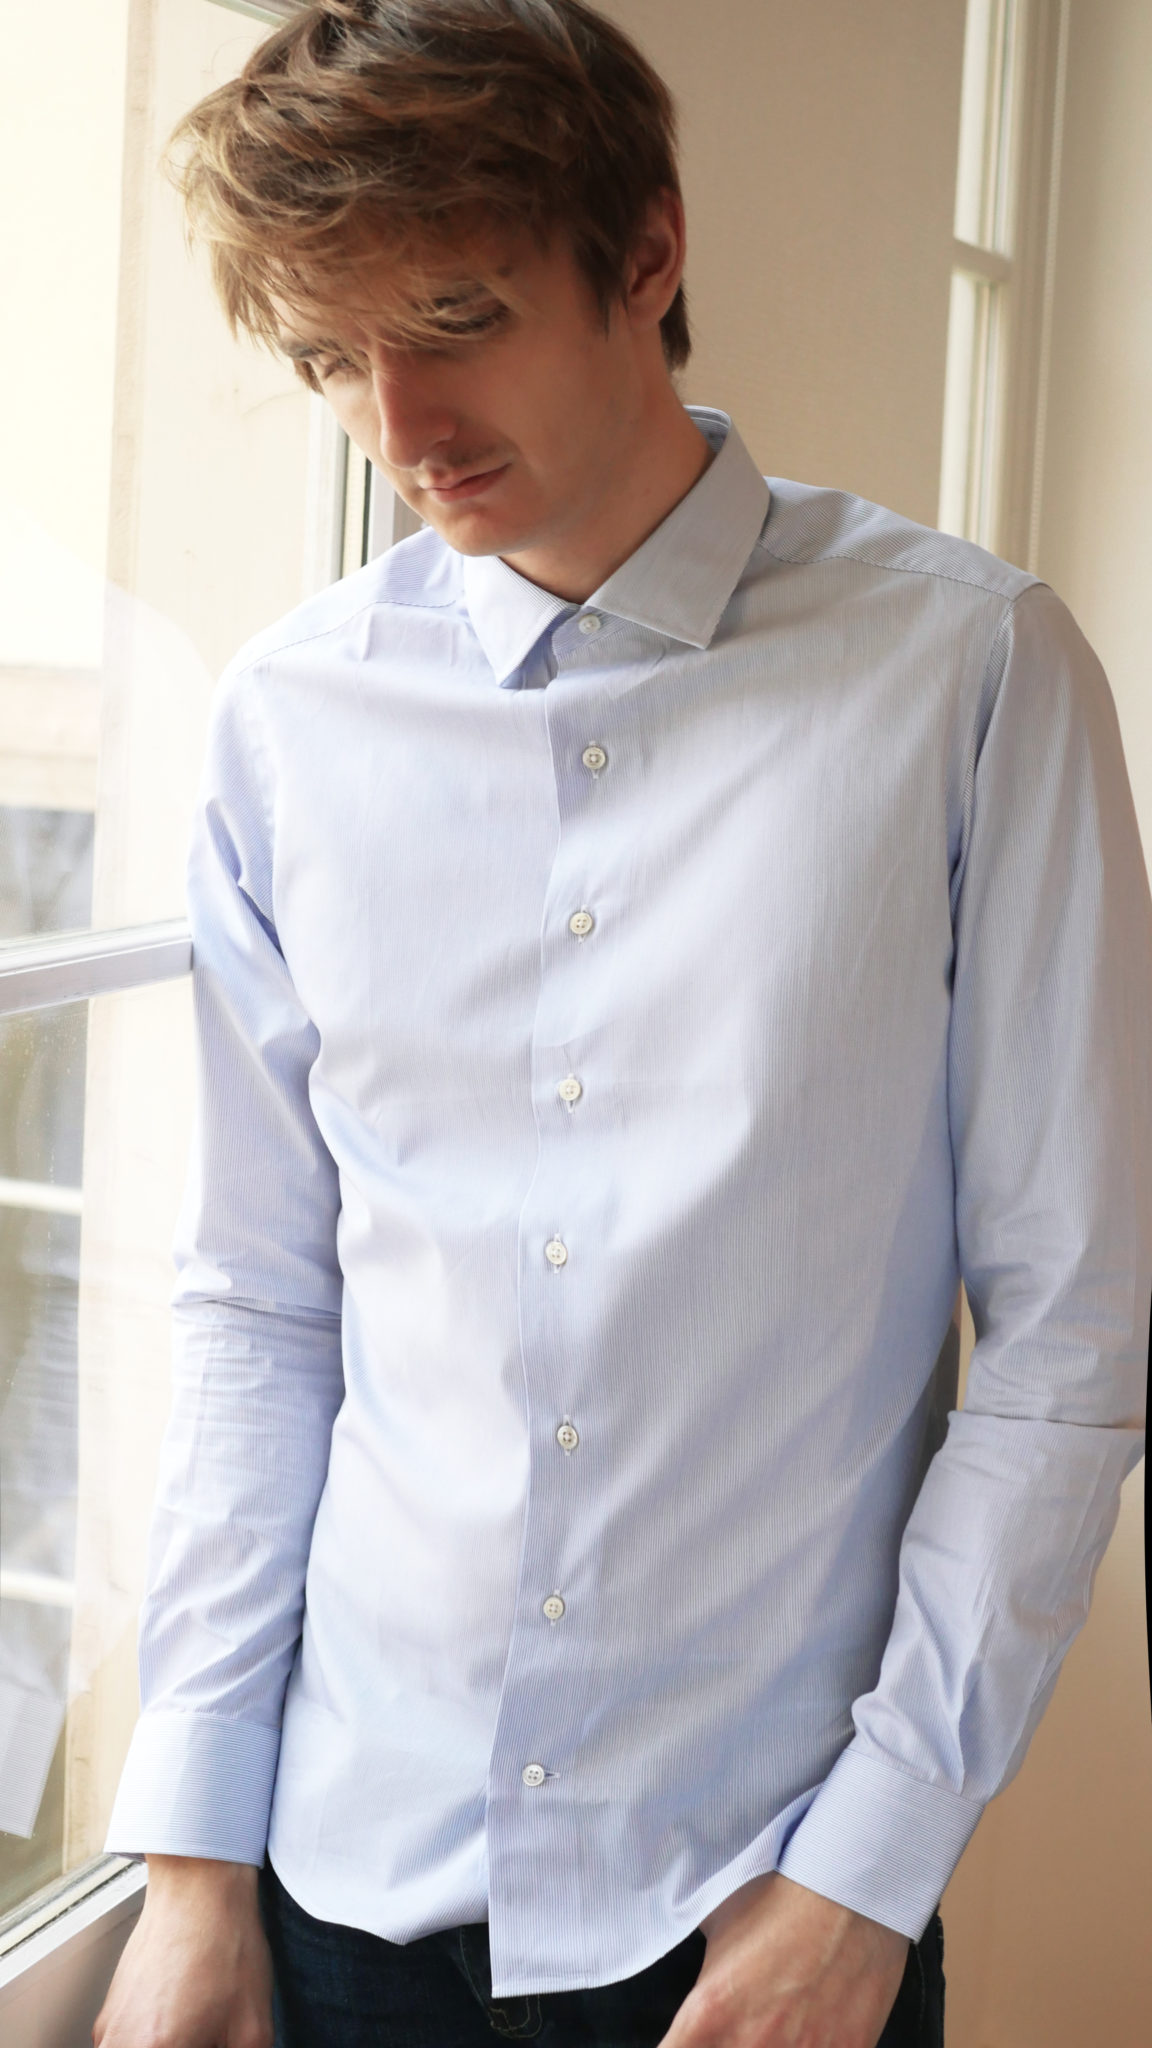 BLOG-MODE-HOMME-STRASBOURG-masculin-chemise-premiere-manche-maurice-style-5